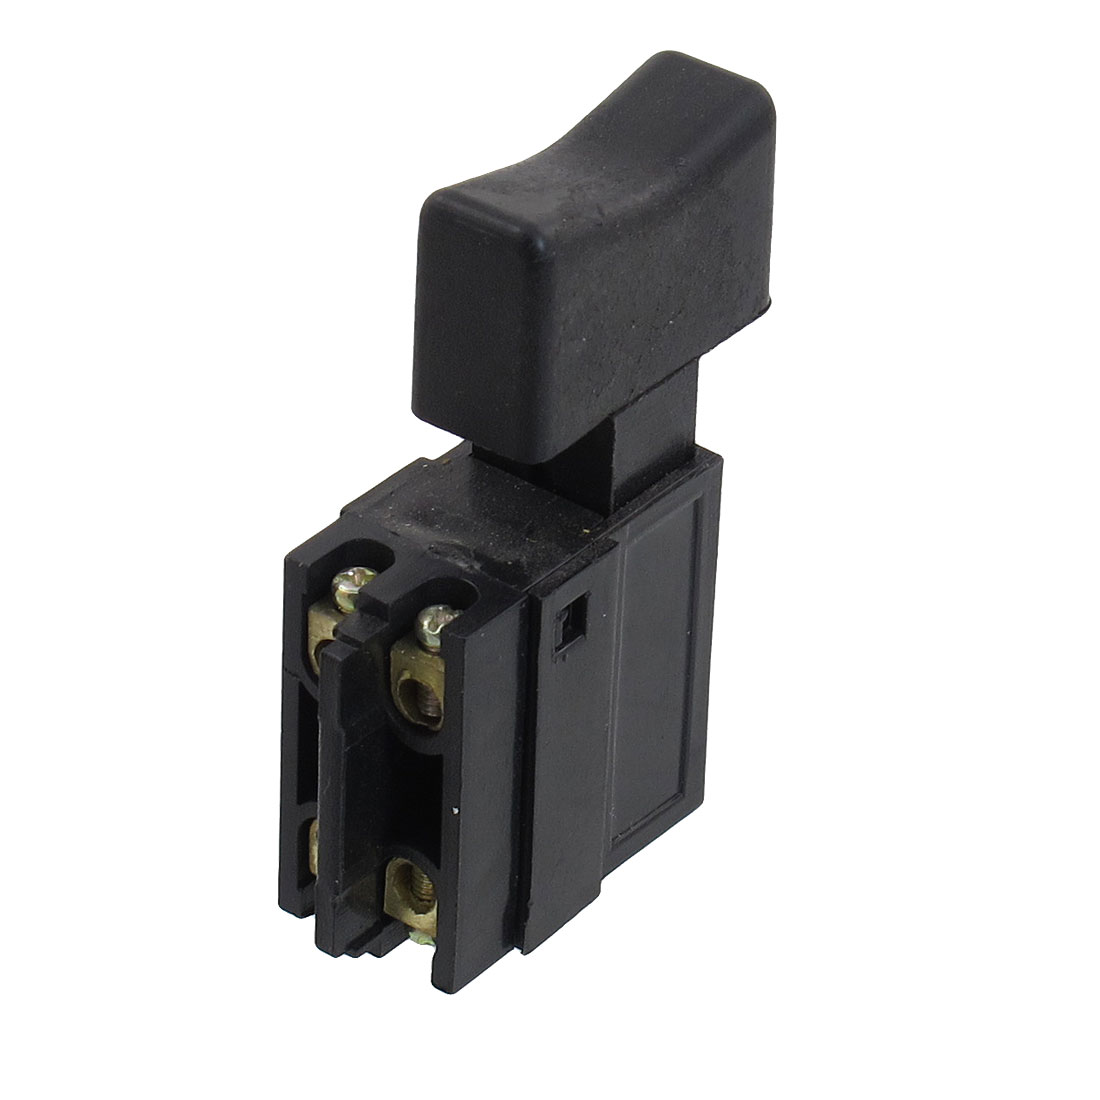 AC 250V 6A Momentary DPST NO Black Shell Electric Tool Trigger Switch